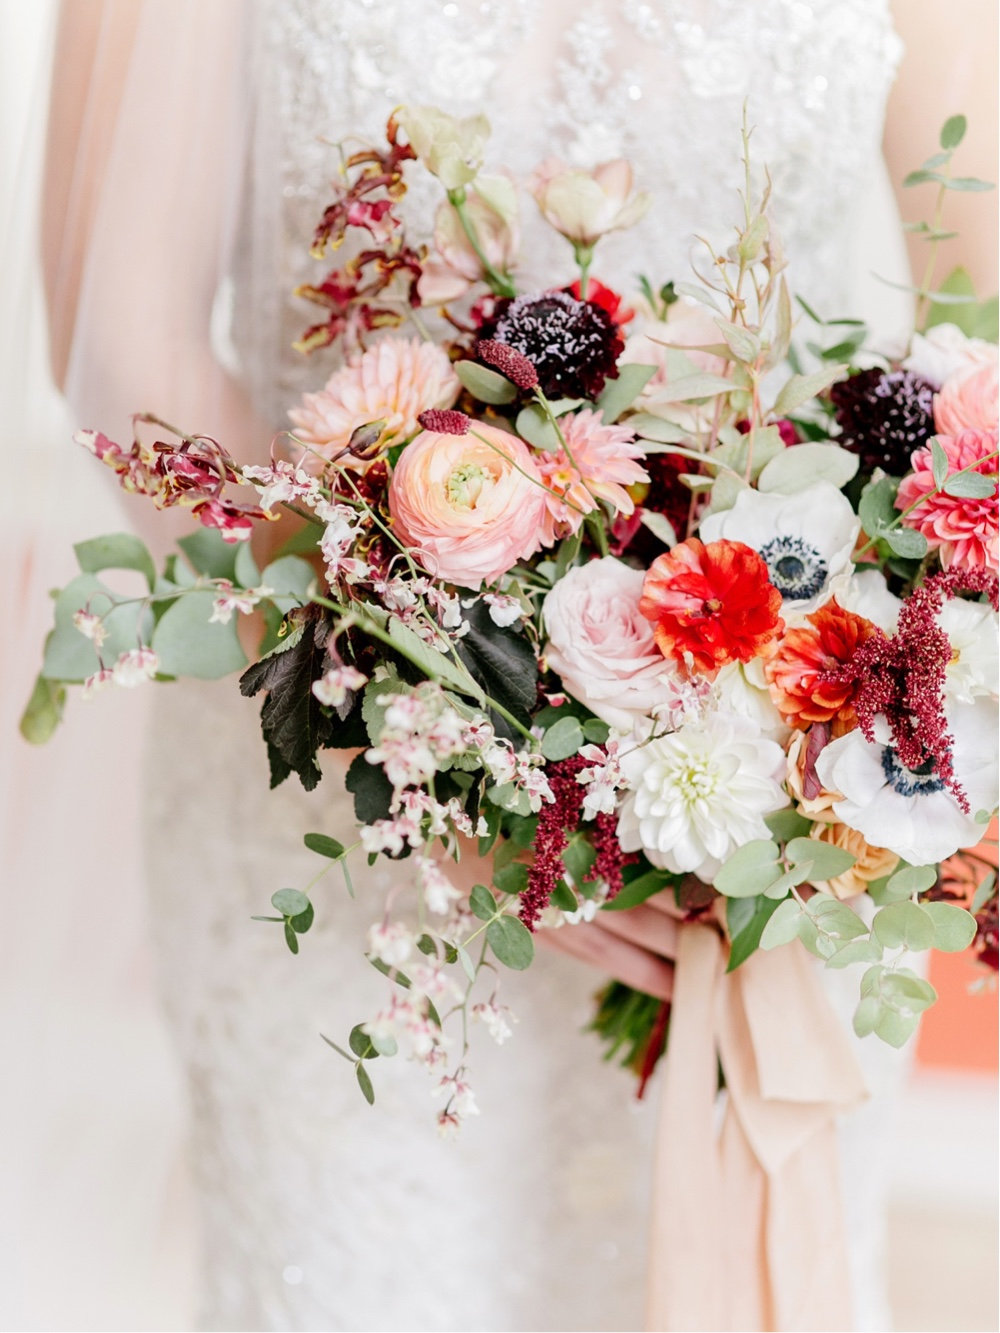 077 Wedding Bouquet Inspiration Burgandy And White Wedding Bouquet Fall Wedding